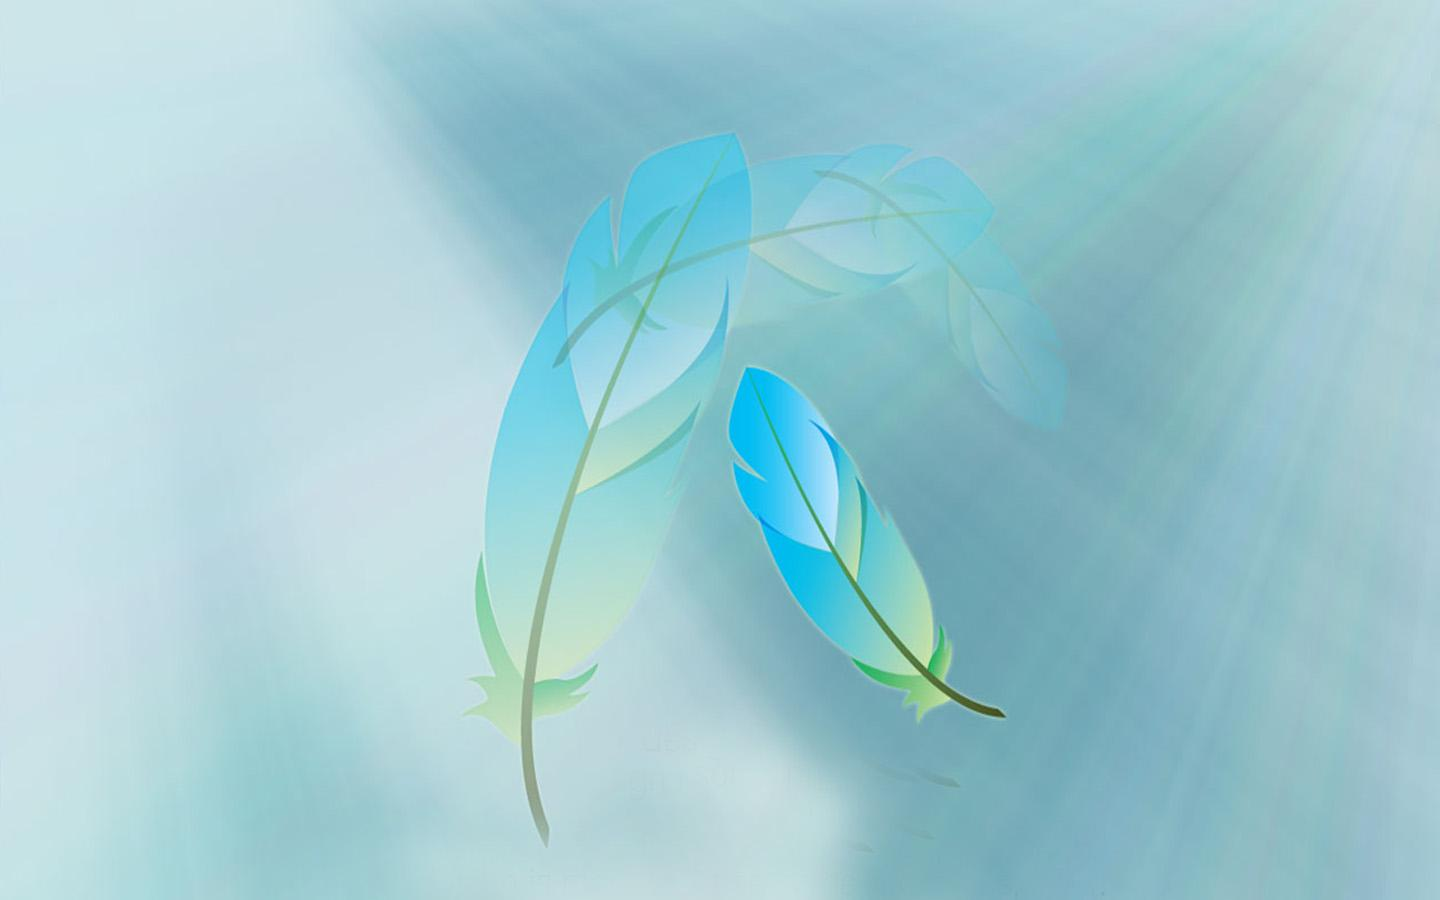 Beautiful Feathers Wallpapers and Pictures One HD 1440x900